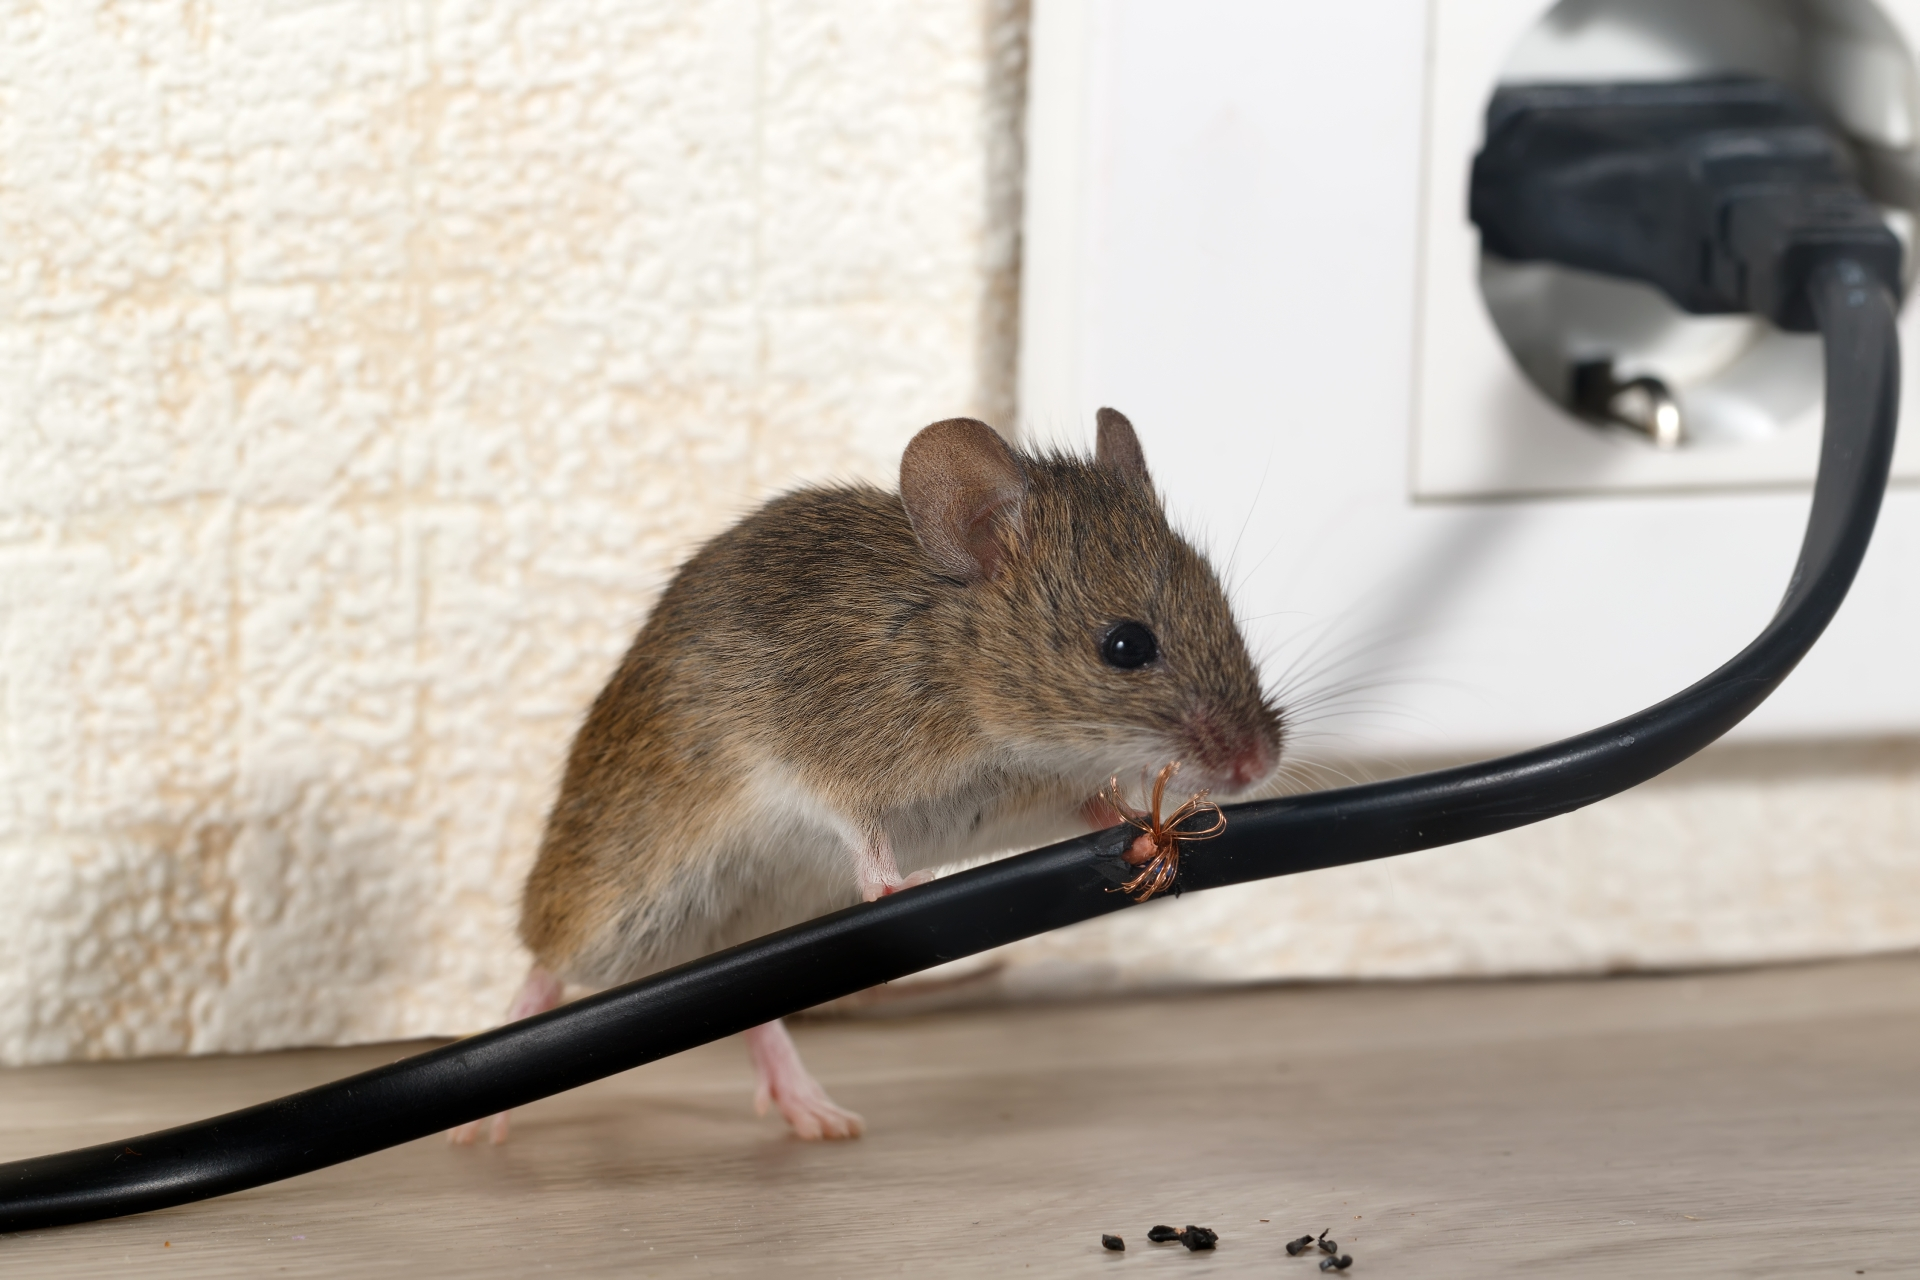 Mice Infestation, Pest Control in Addlestone, New Haw, Woodham, KT15. Call Now 020 8166 9746